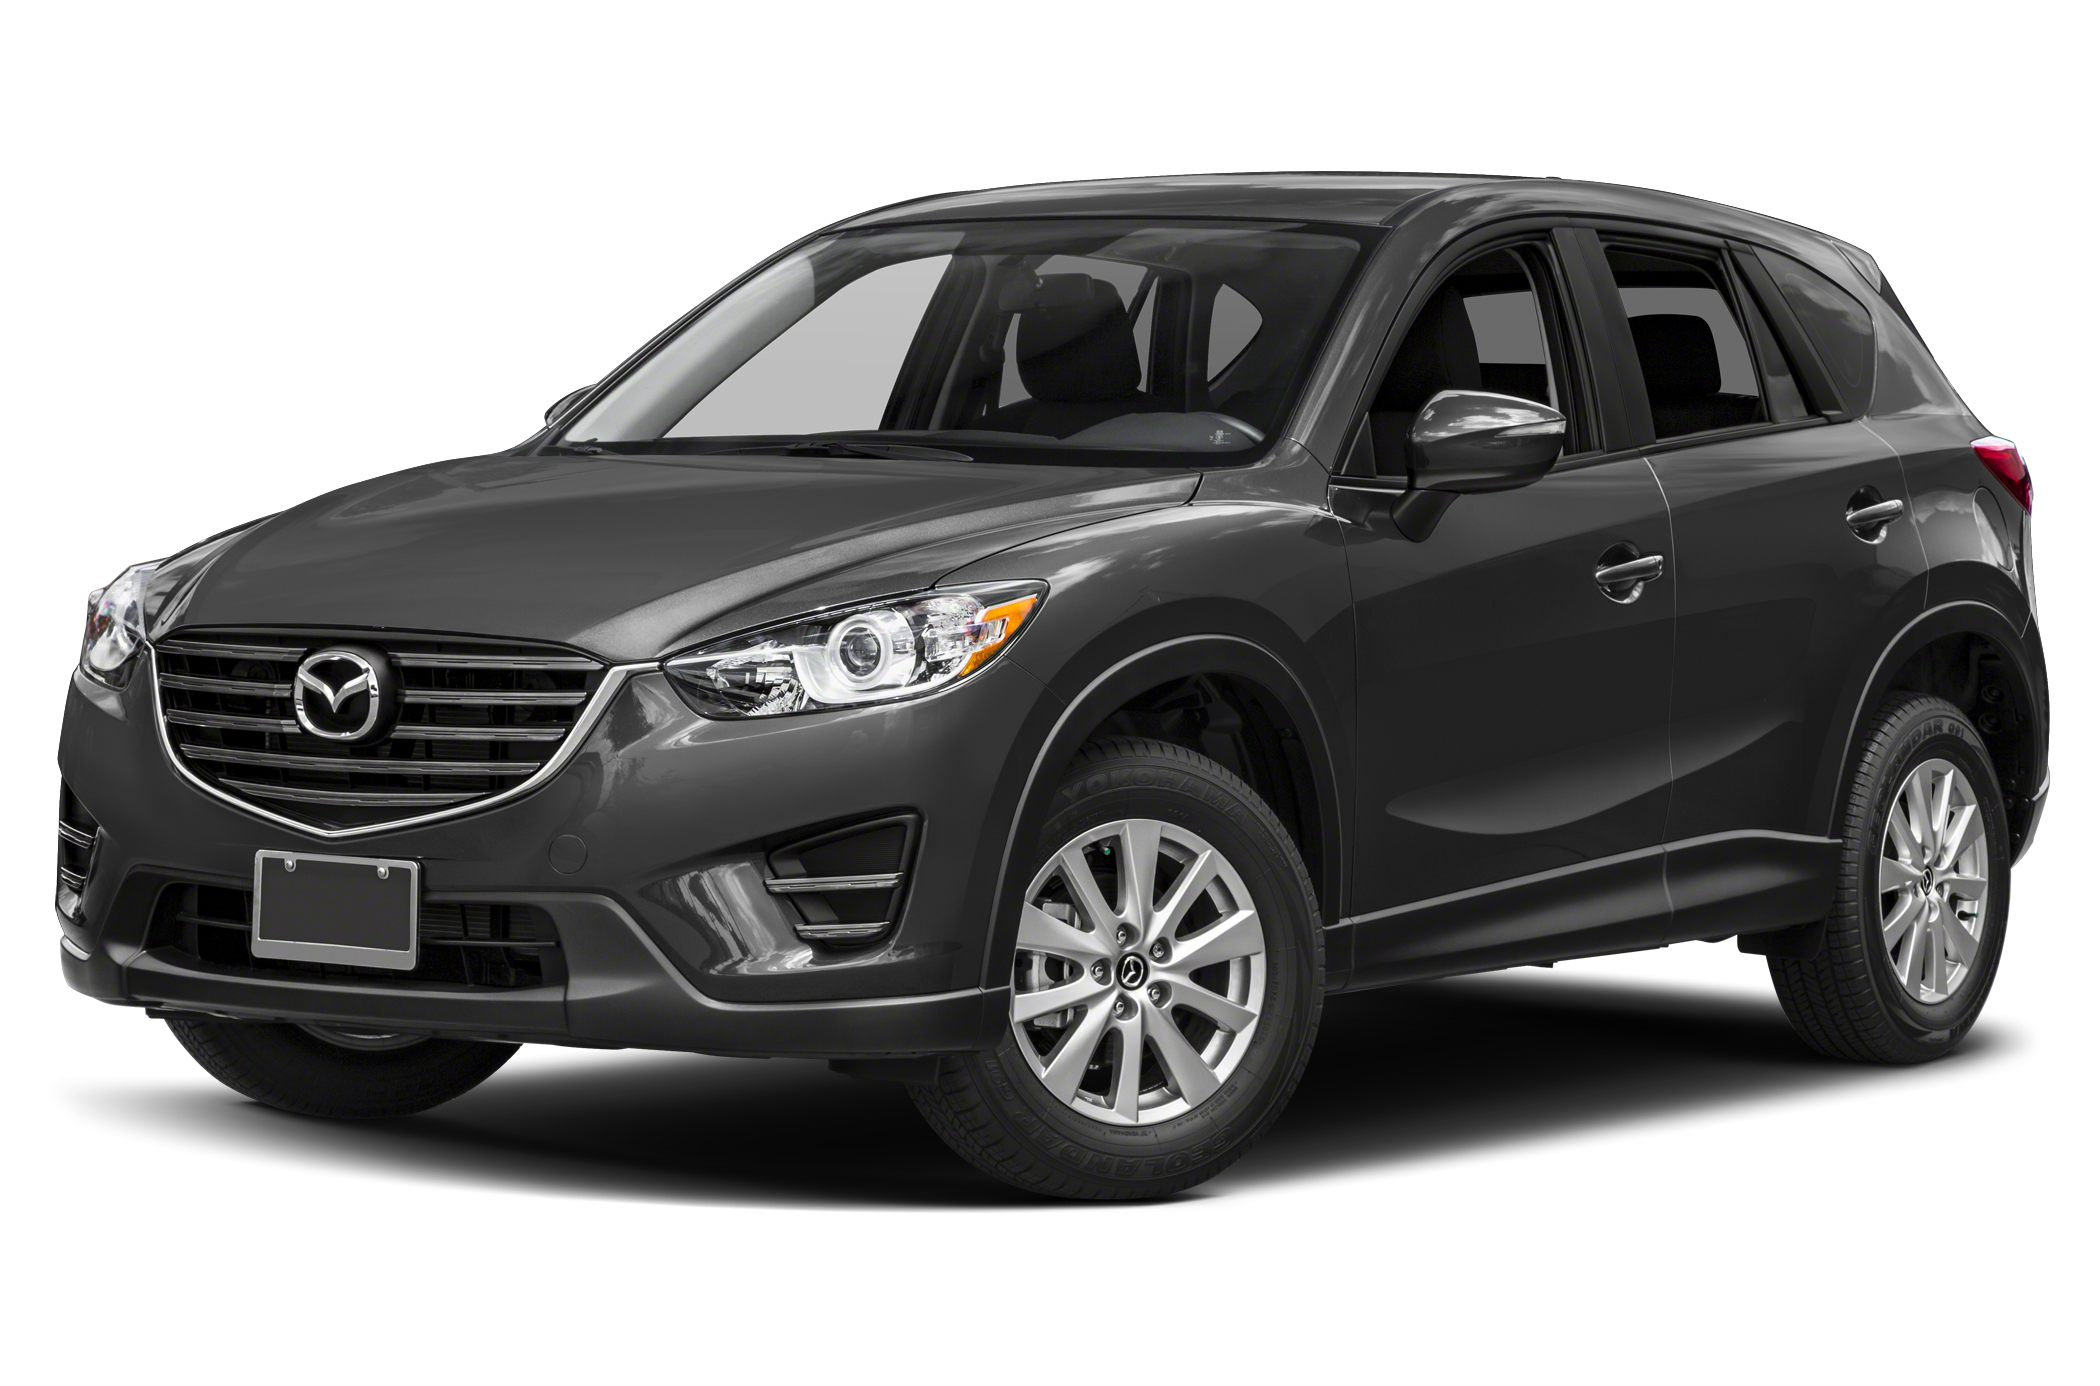 Cx 5 Colors >> See 2016 Mazda Cx 5 Color Options Carsdirect